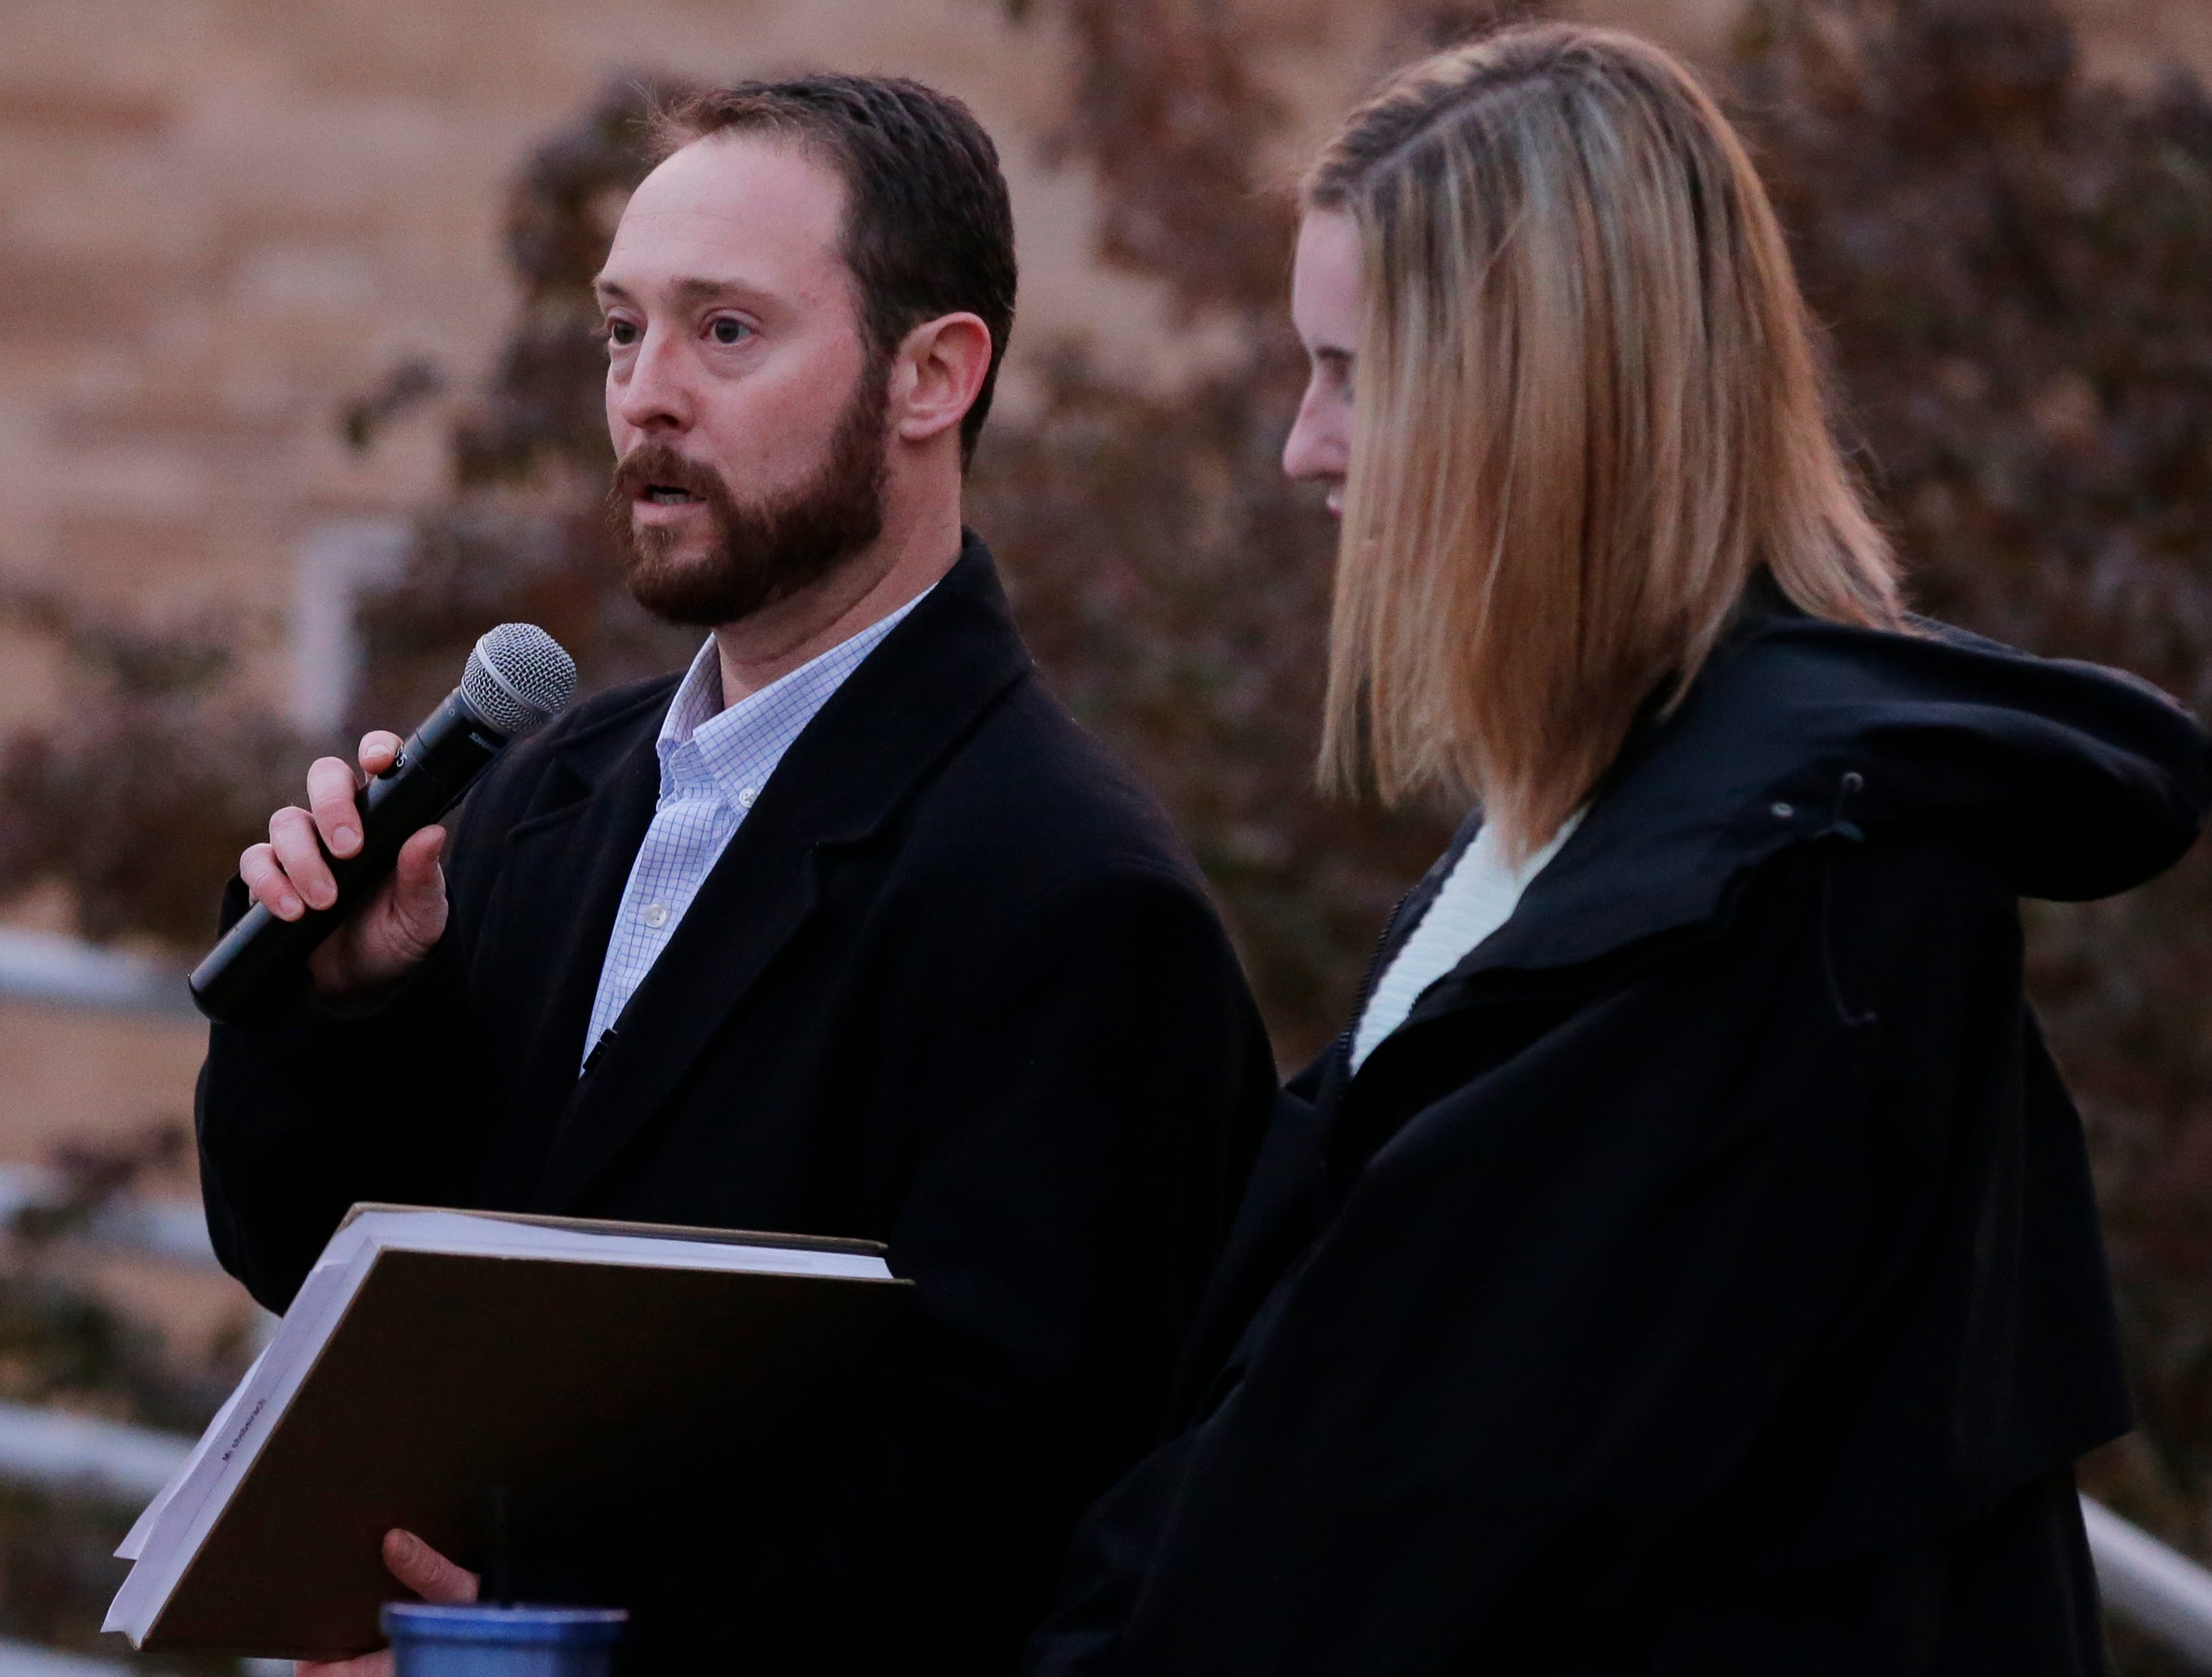 Andy Solomon  of Congregation B'nai Israel sings the Mi Shebereich during the vigil.  A candlelight vigil was held on the upper deck of UW-Oshkosh's Albee Hall Thursday, November 1, 2018, to come together and remember those killed at the Tree of Life Congregation in the Squirrel Hill neighborhood of Pittsburgh, Pa. Eleven people were killed and six injured in the attack.